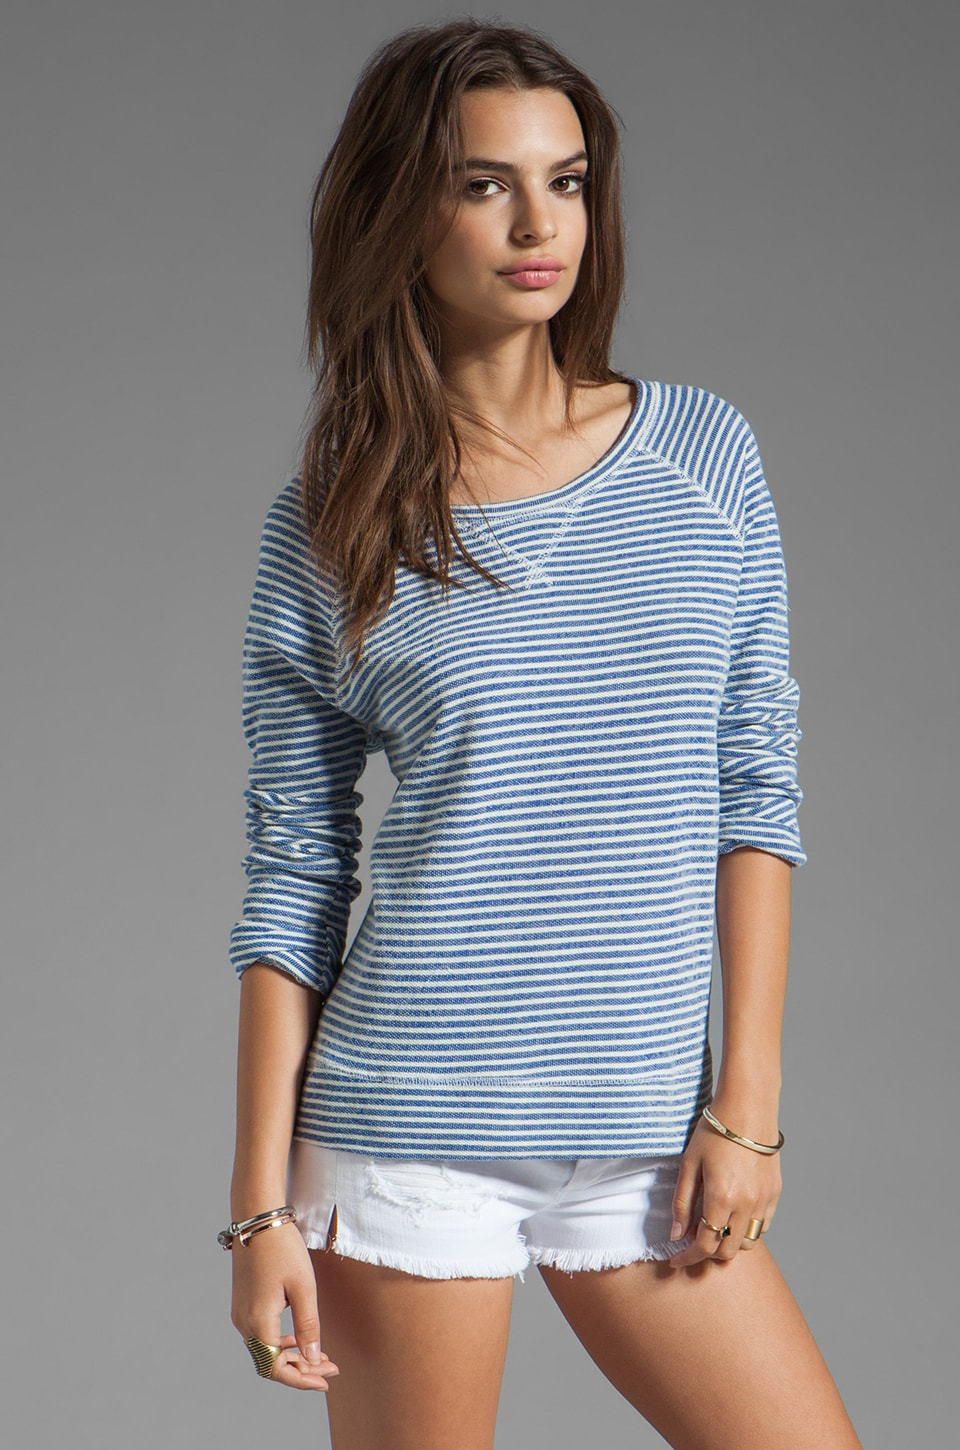 Soft Joie Emma Striped Pullover in Mazarine Blue